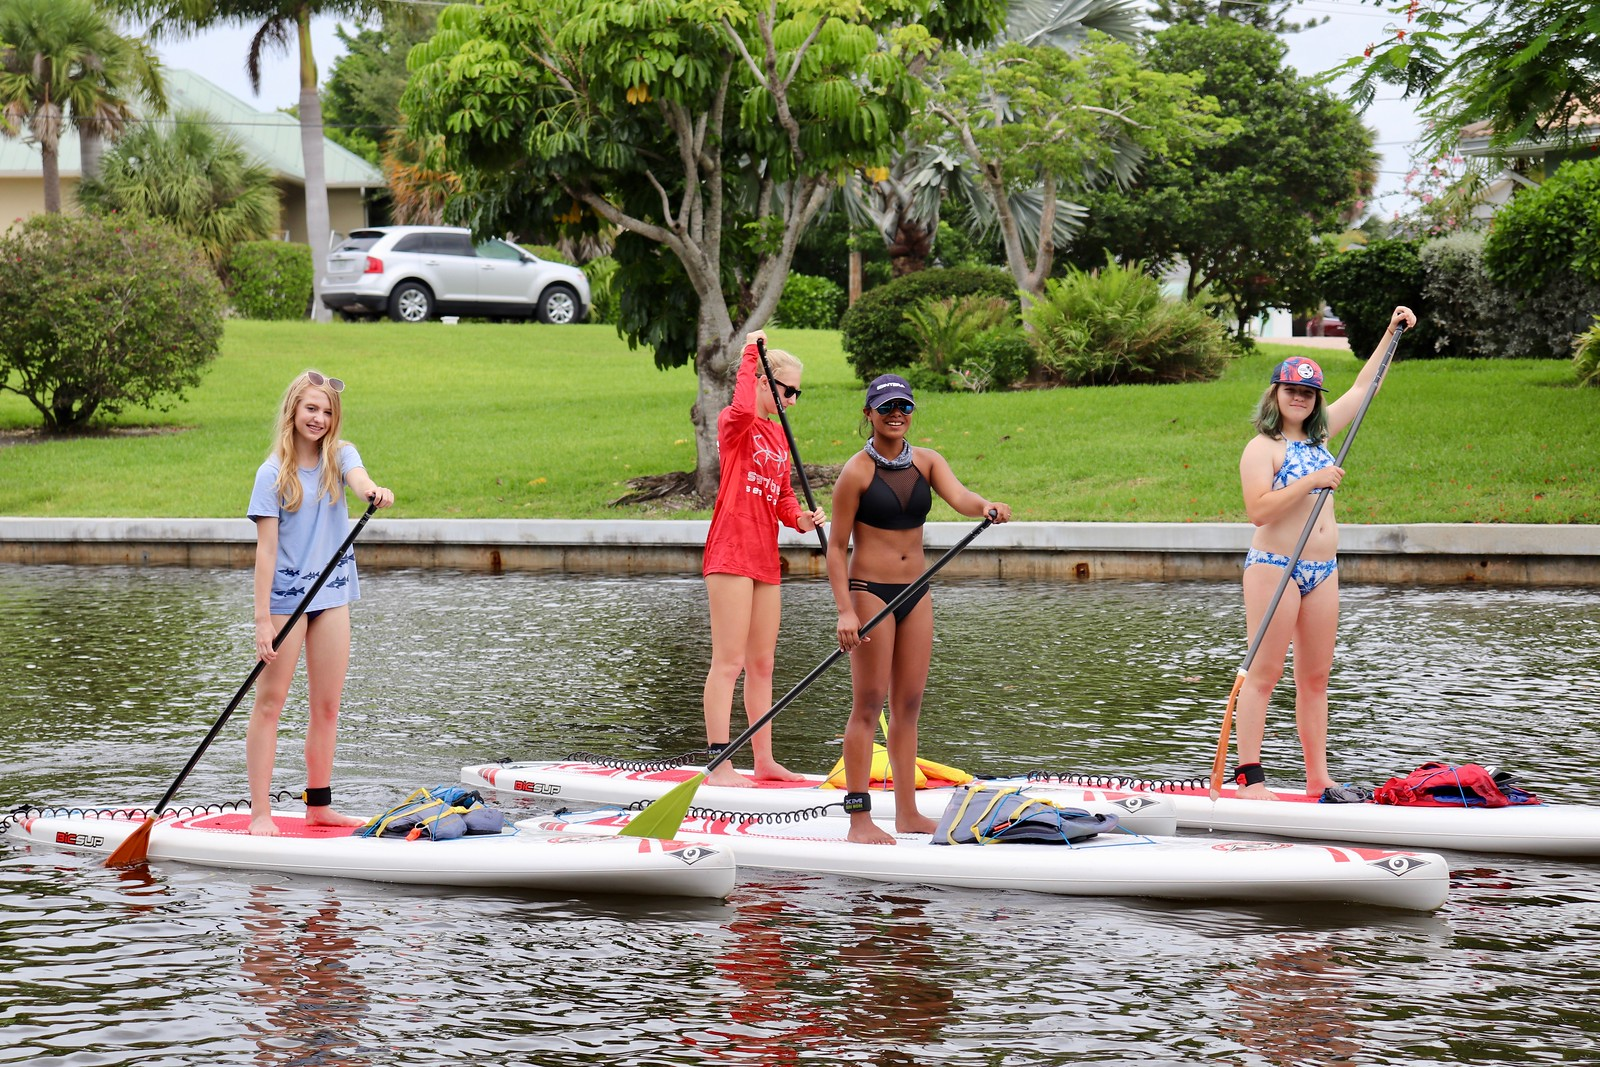 Wahine Toa  campers went for a paddle in the Sanibel canals.